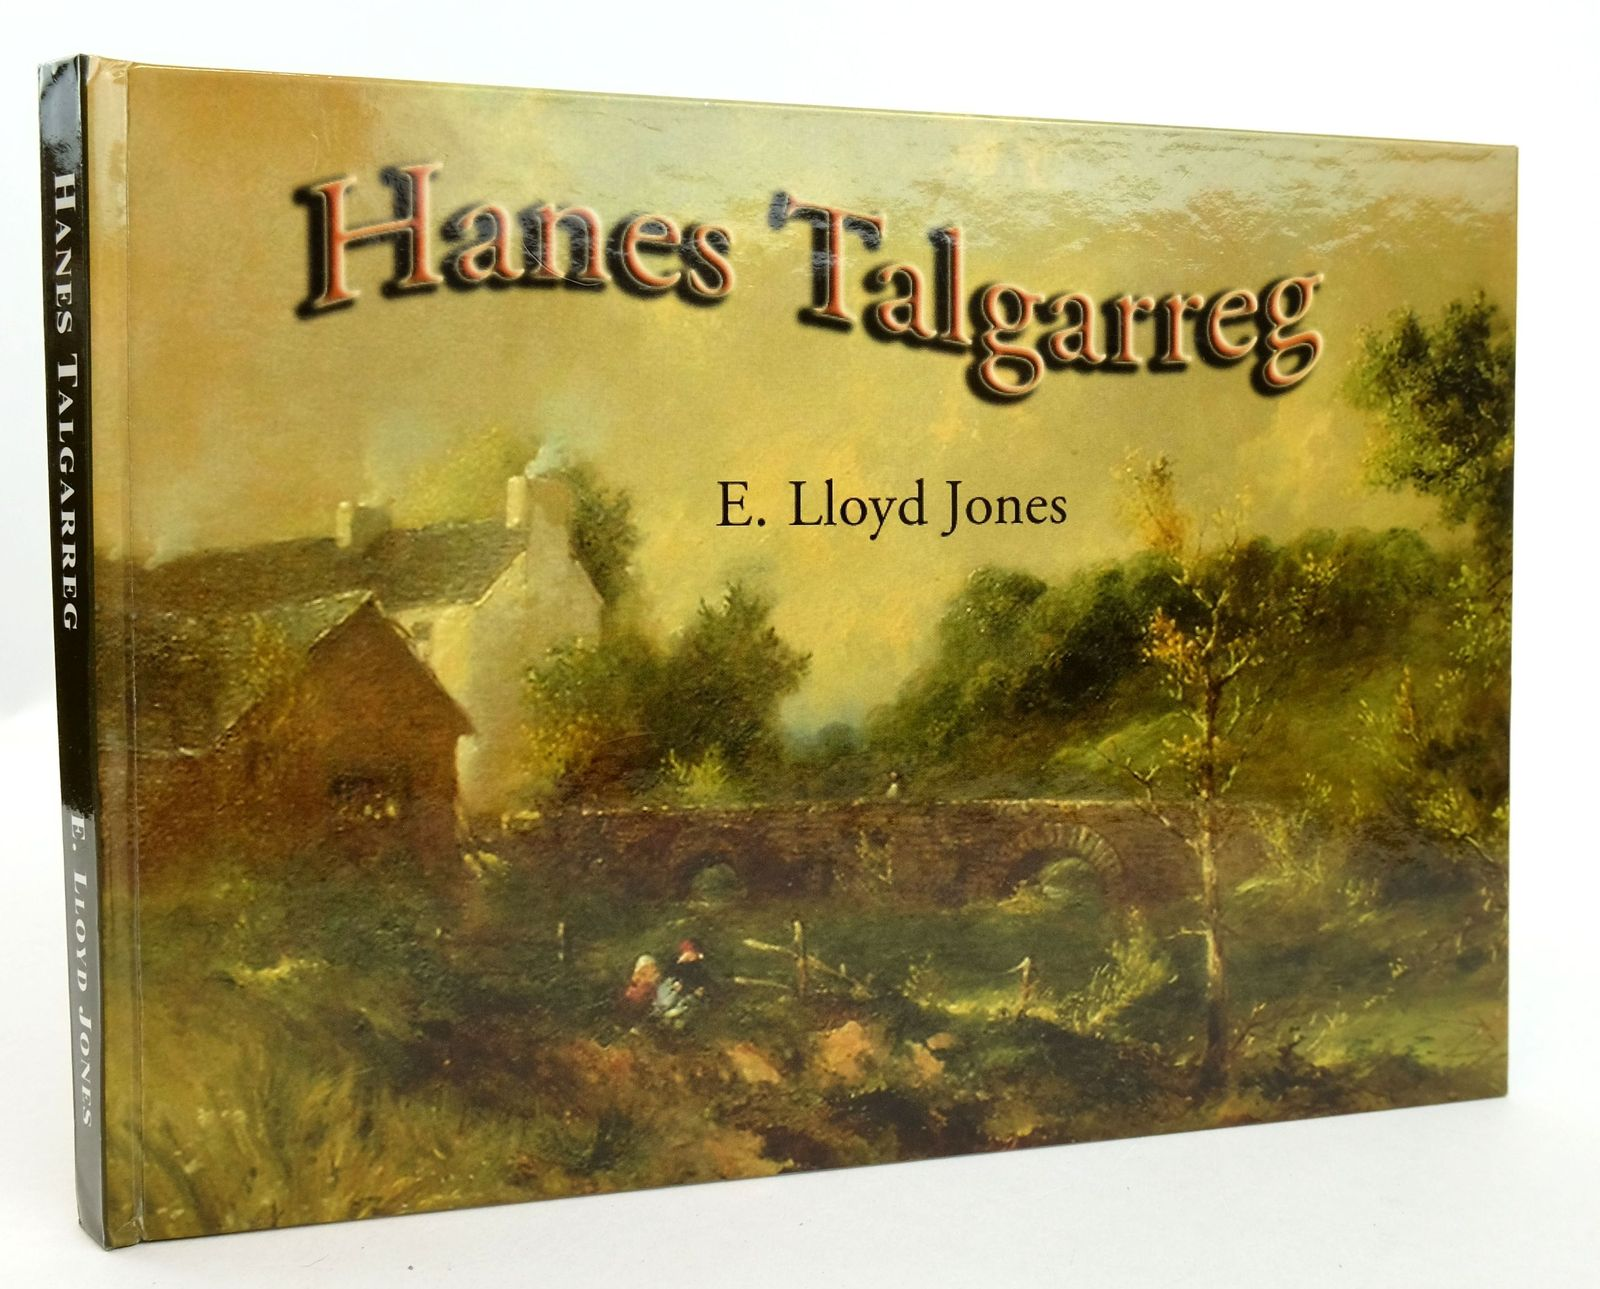 Photo of HANES TALGARREG written by Jones, E. Lloyd published by Gomer Press (STOCK CODE: 1819187)  for sale by Stella & Rose's Books